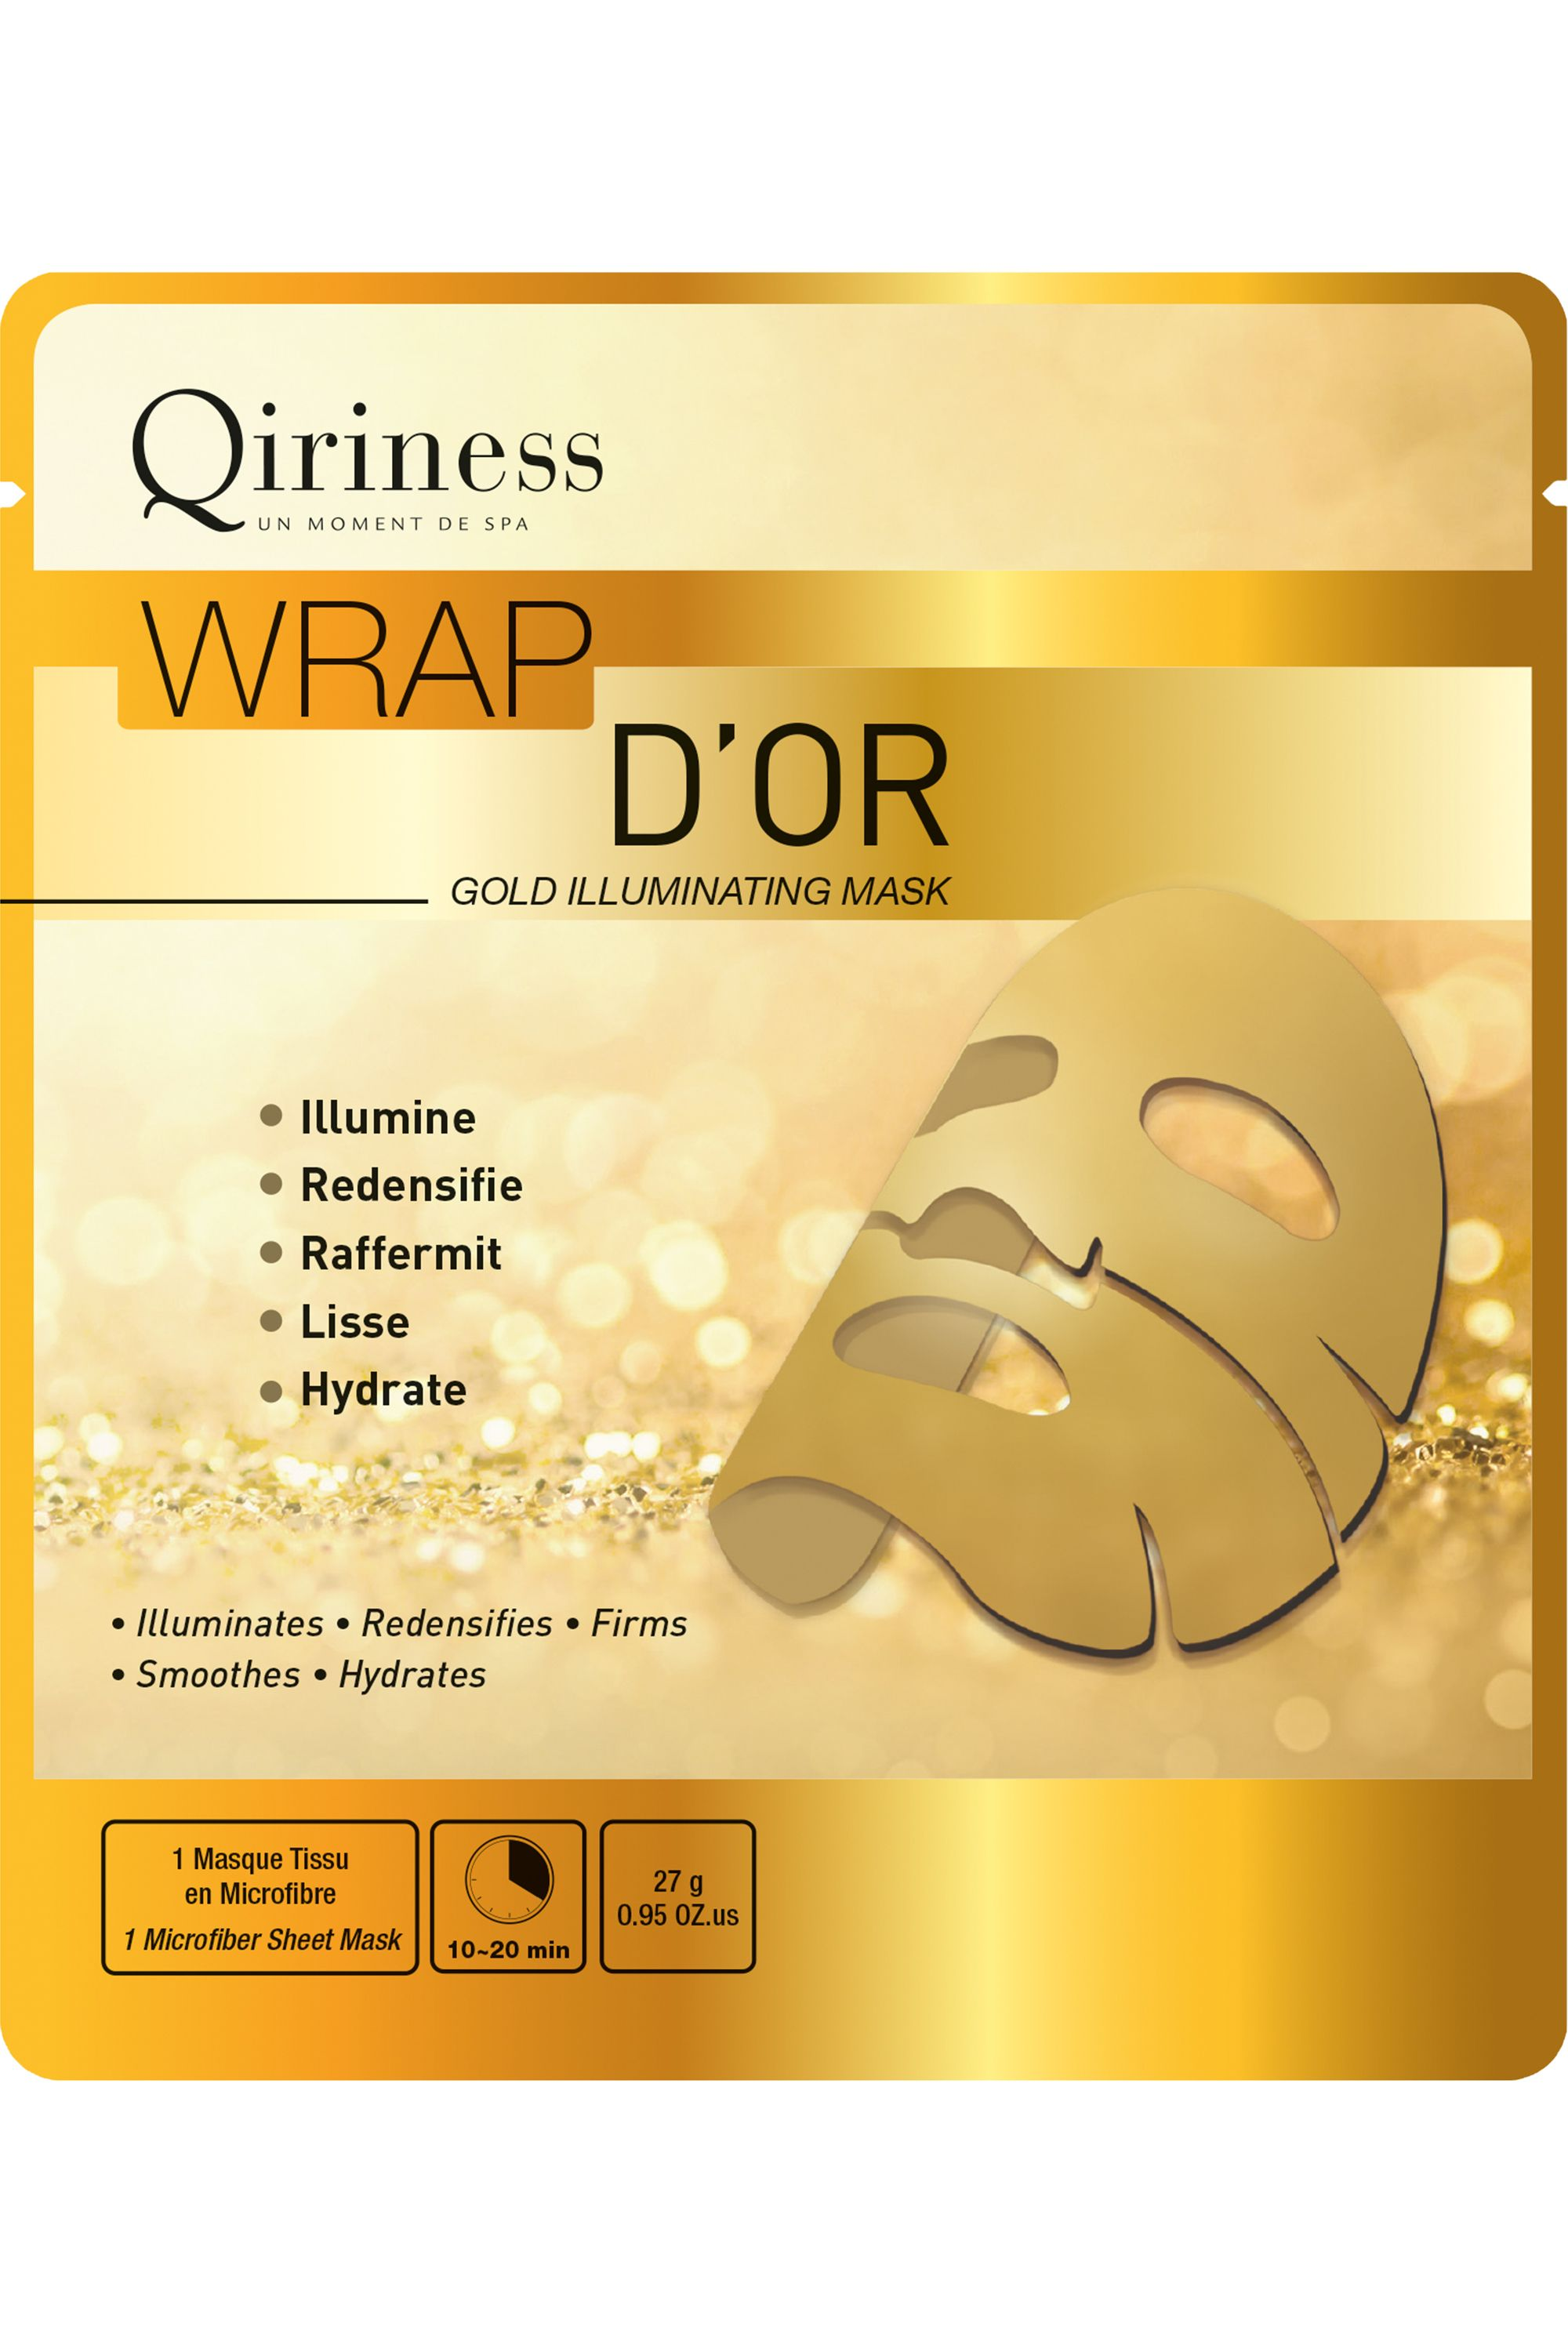 Blissim : Qiriness - Masque Wrap d'Or - Masque Wrap d'Or